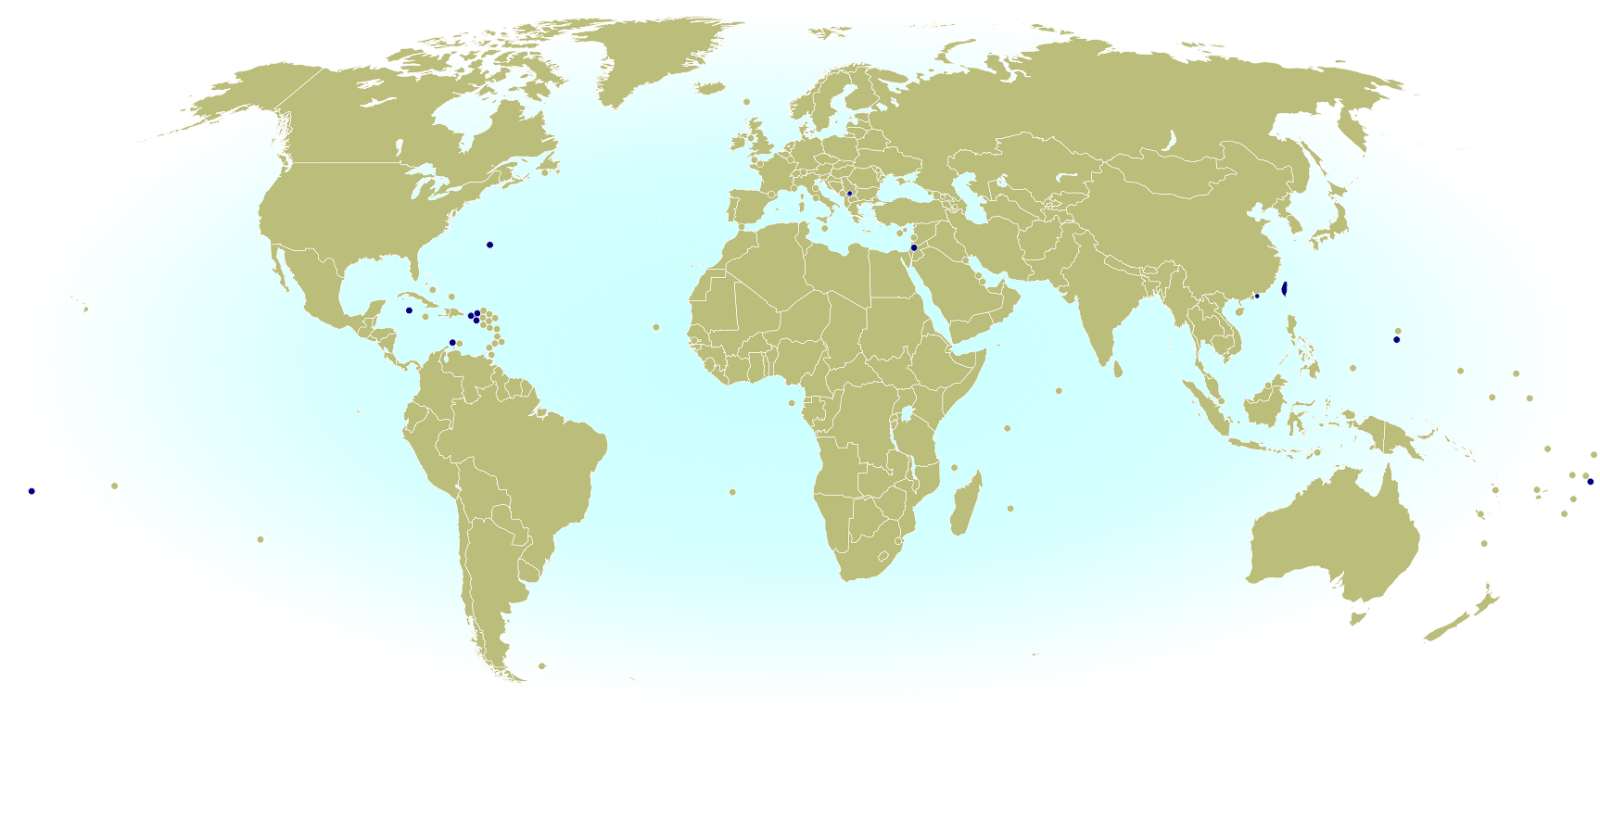 World map marking dependent territories and partially recognized countries (de facto sovereign states) that have recognized National Olympic Committees and are allowed by the IOC to participate in the Olympic Games